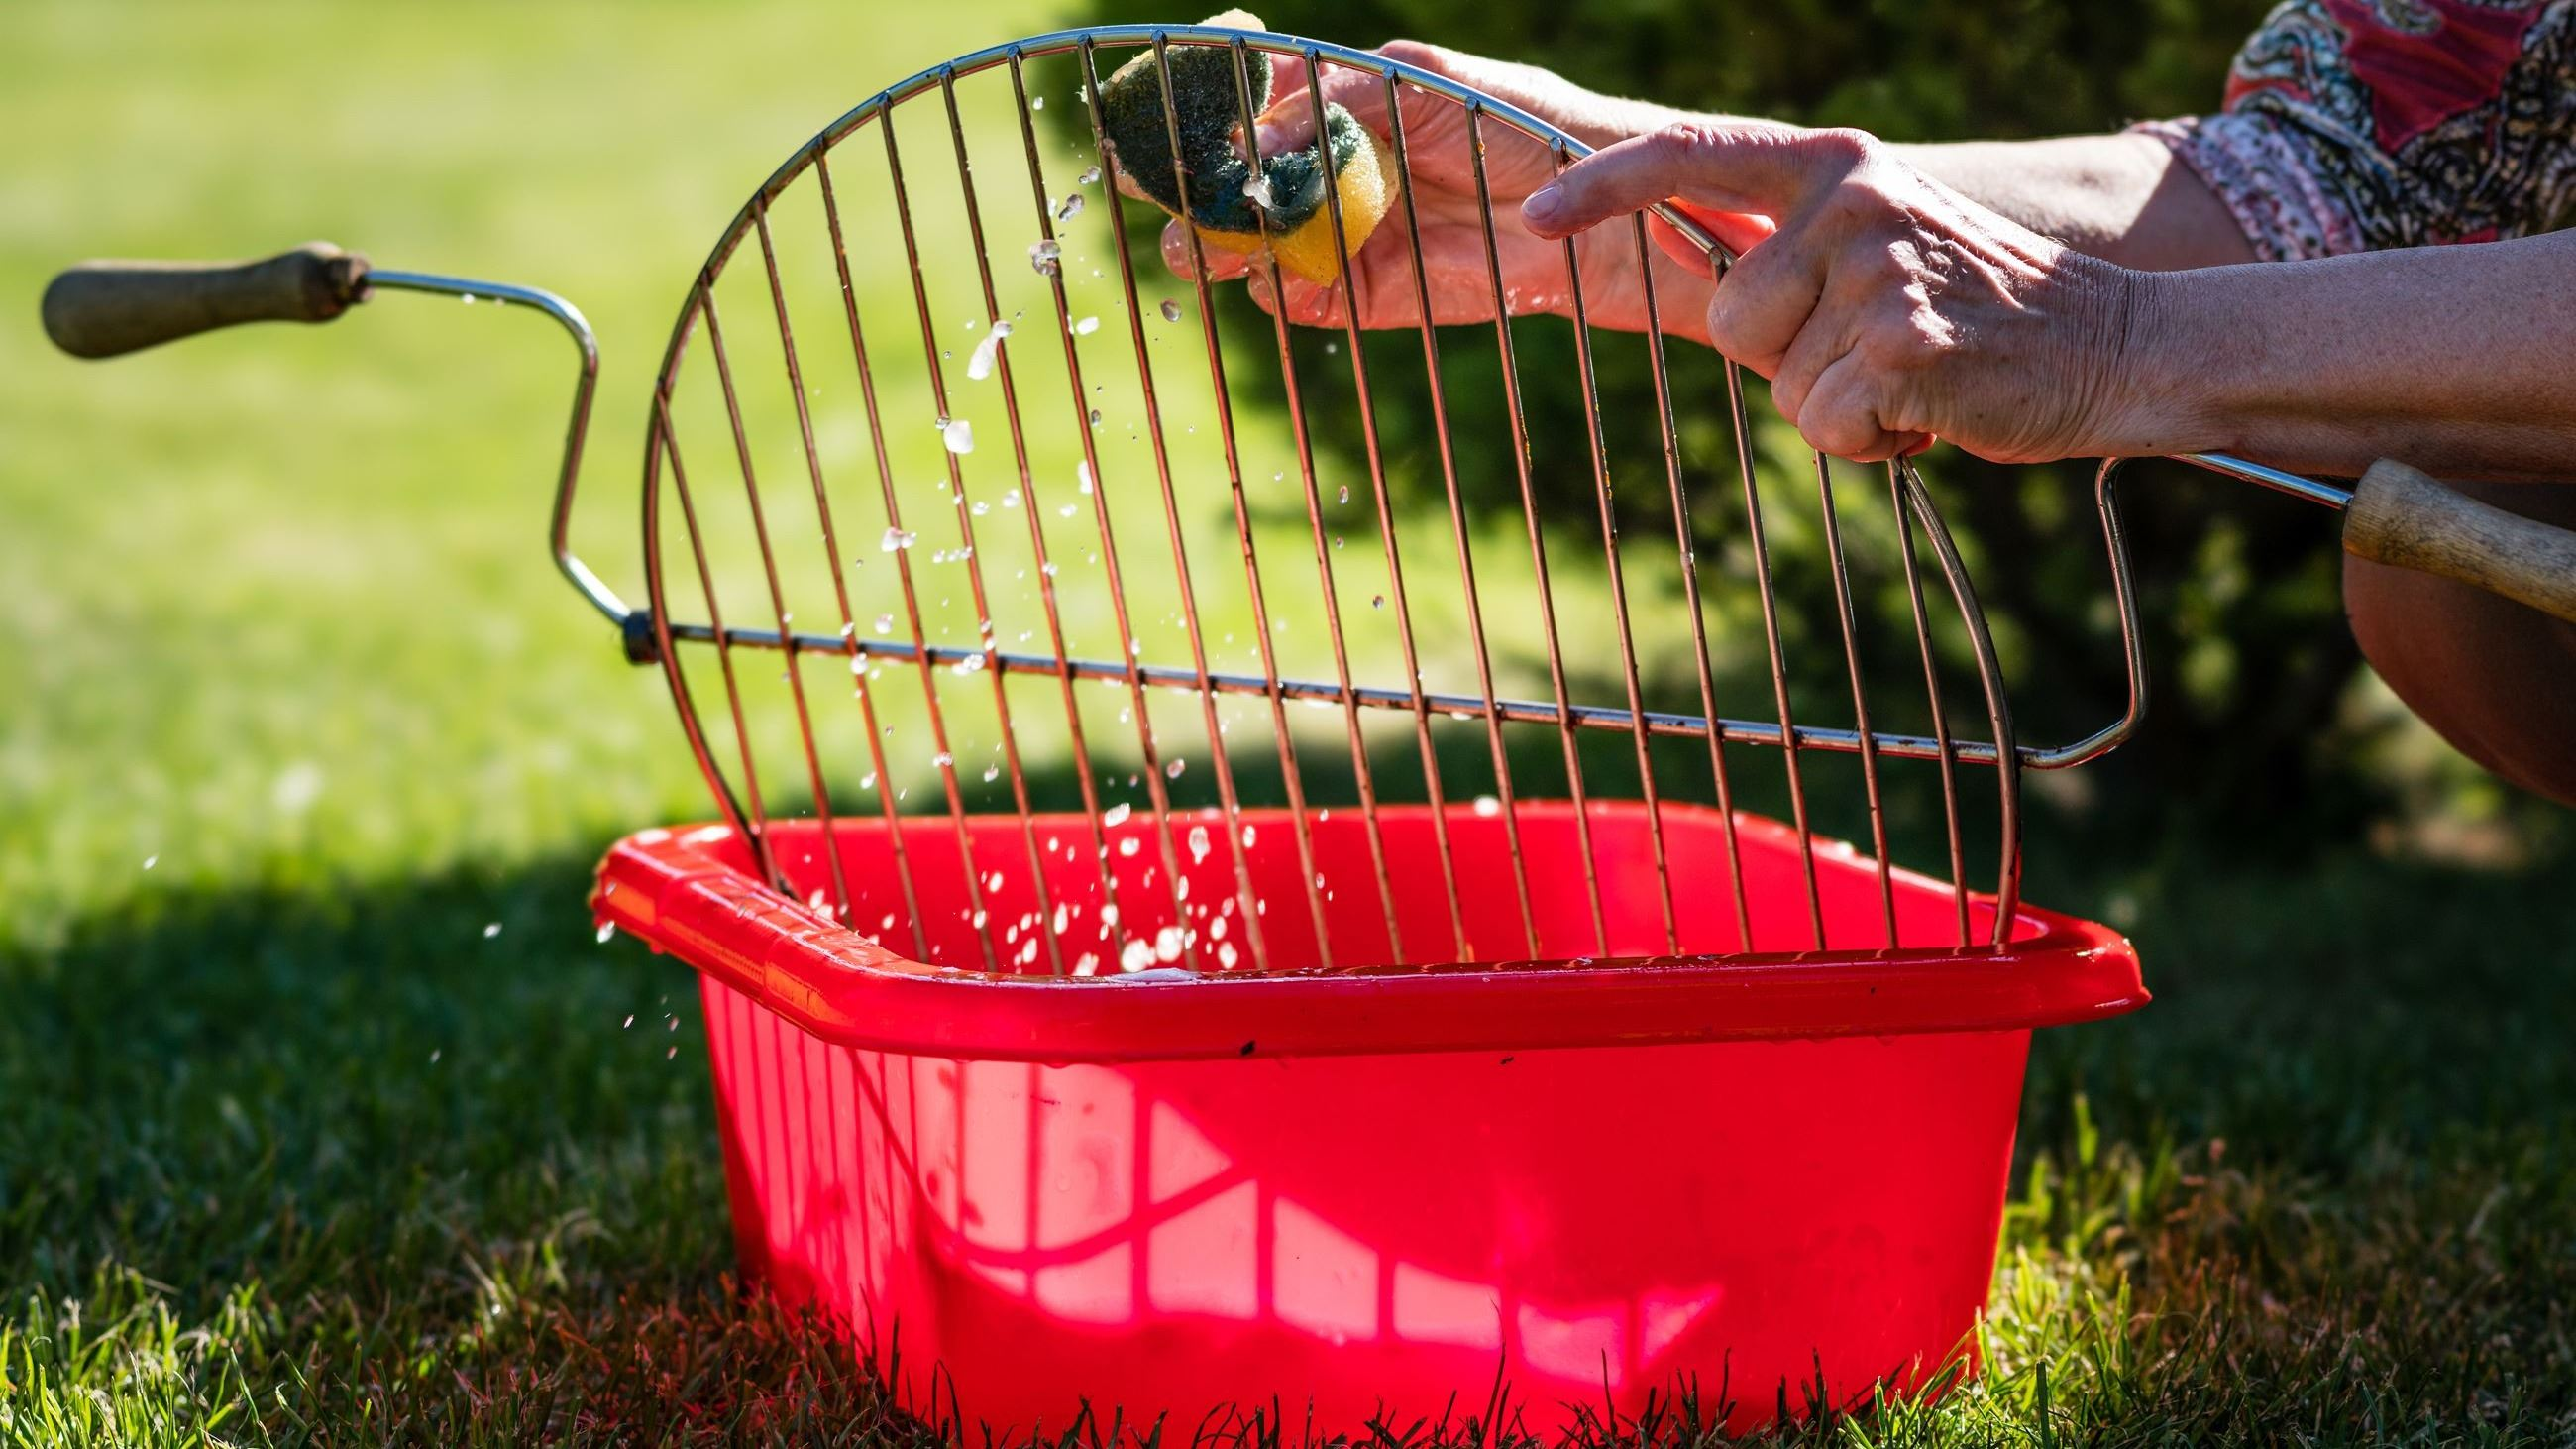 person cleaning a grill grate in a red bucket AdobeStock_204768309